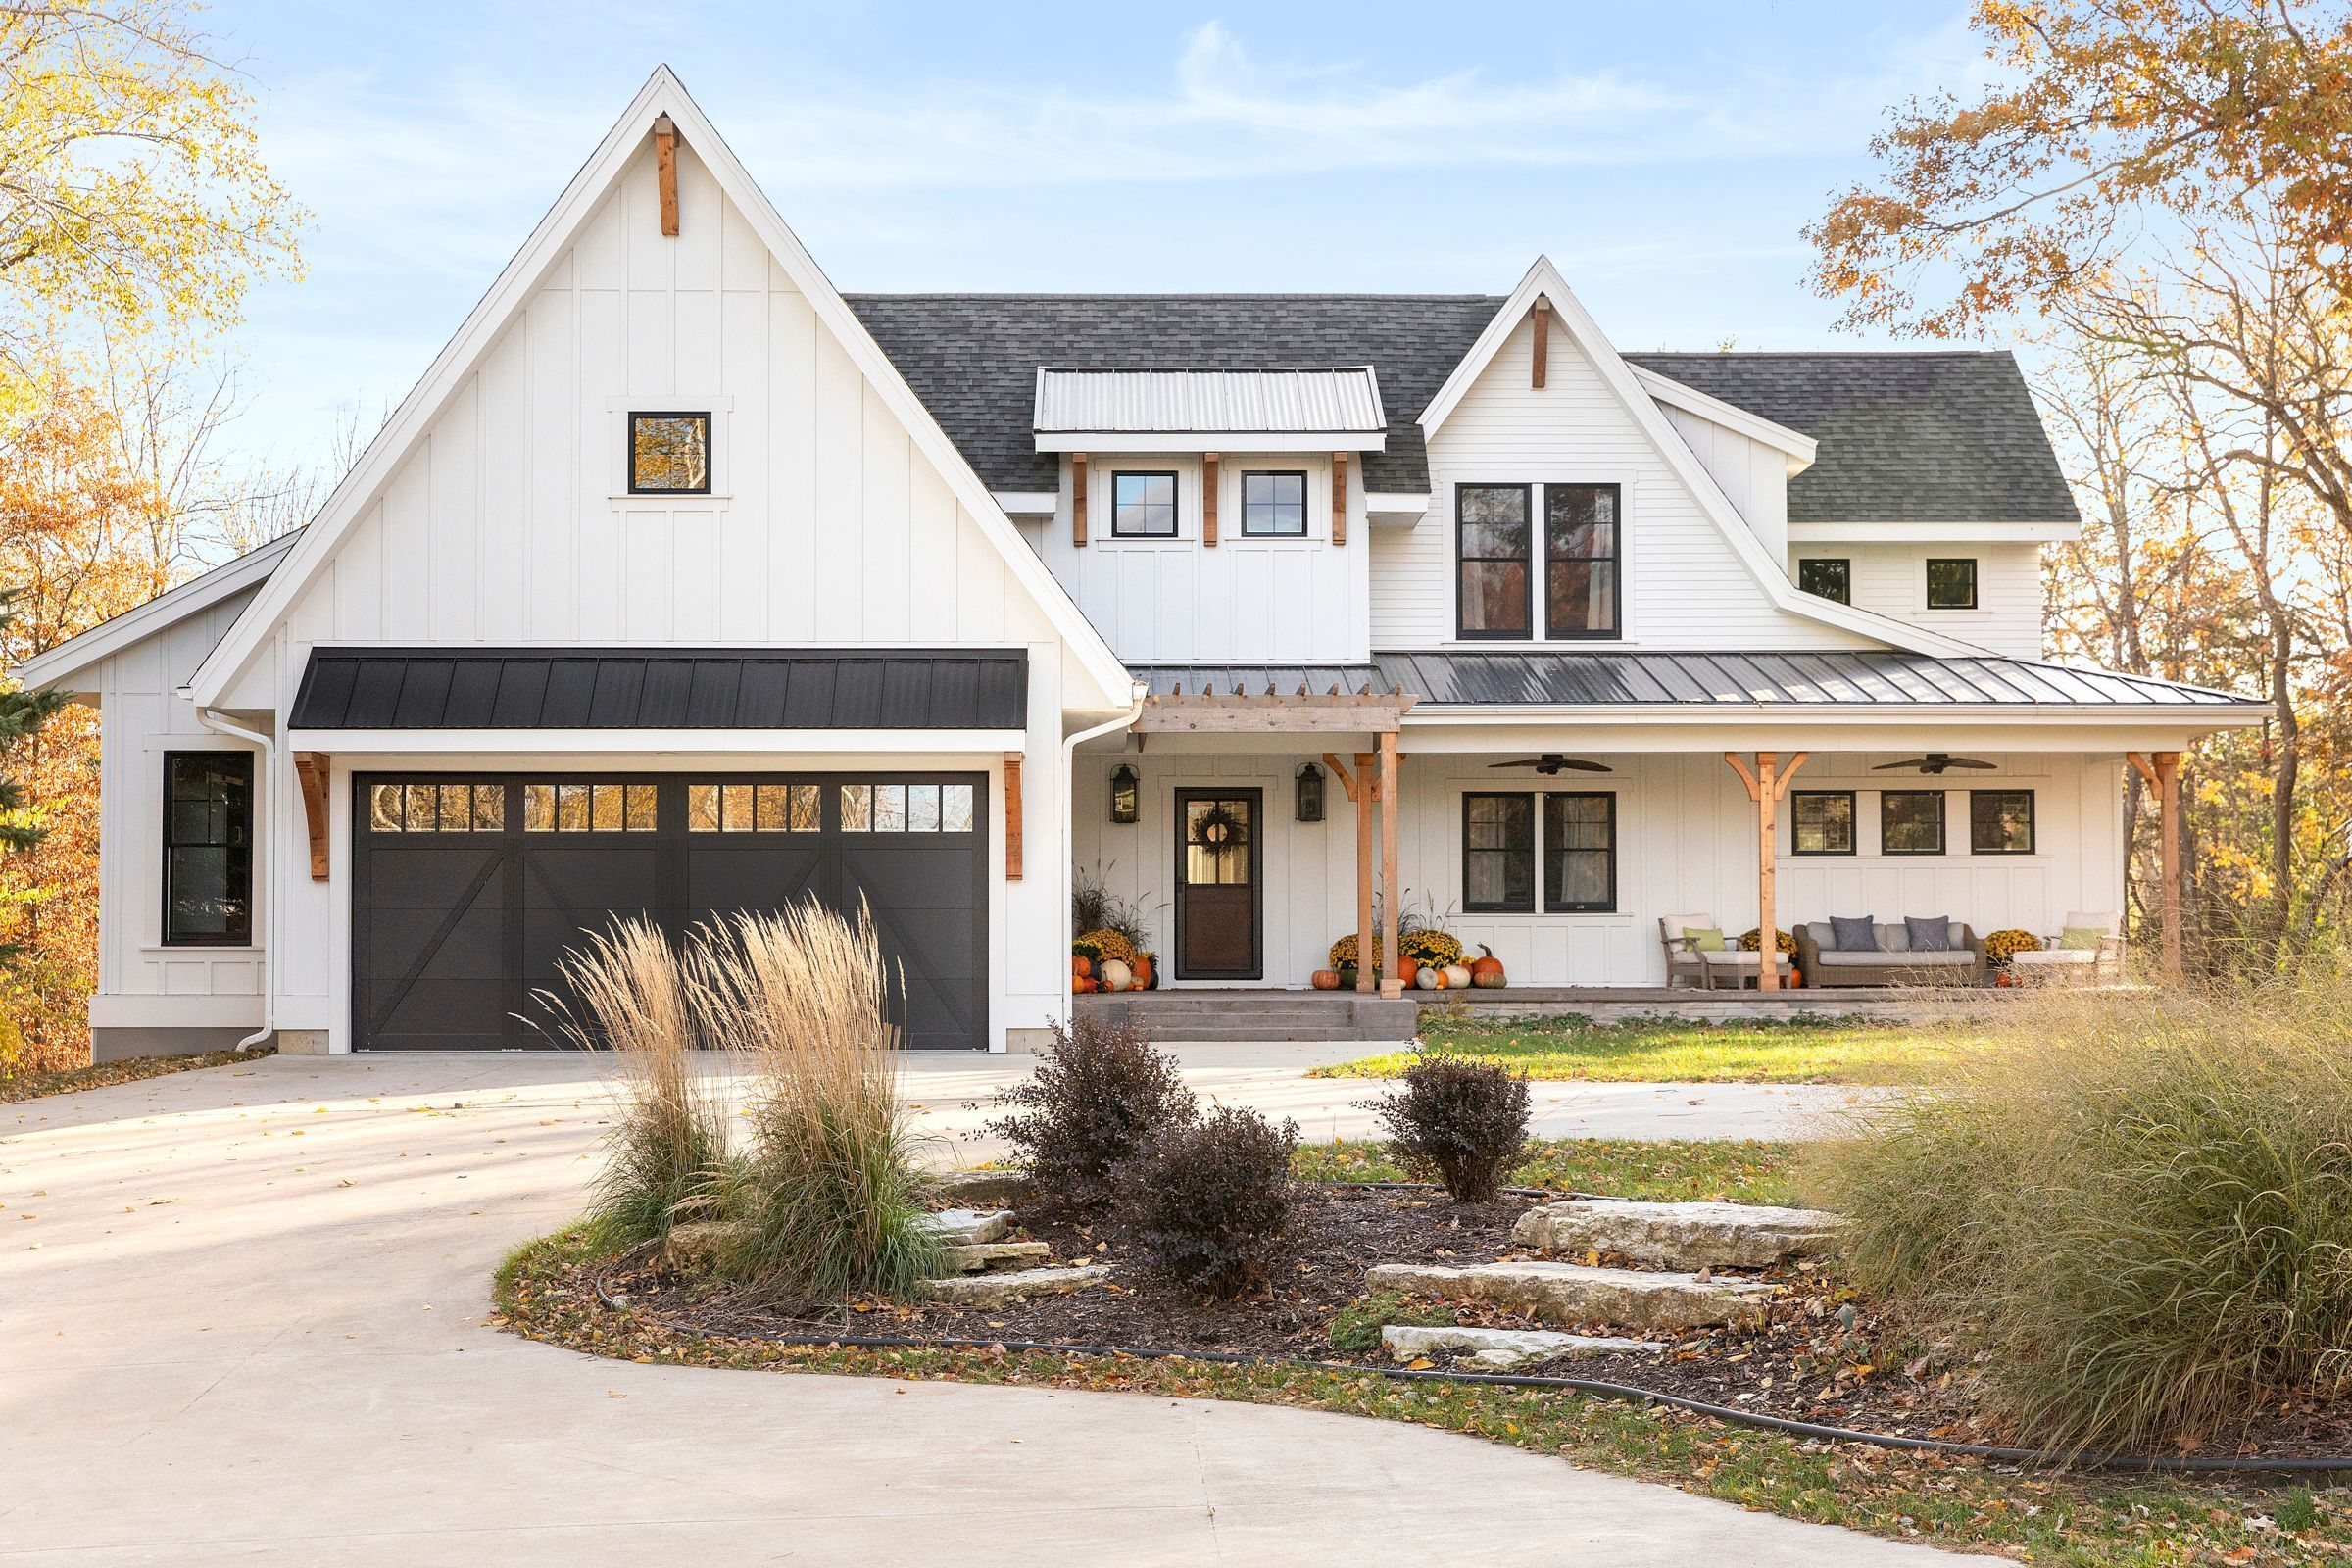 21++ Modern farmhouse with wood accents ideas in 2021